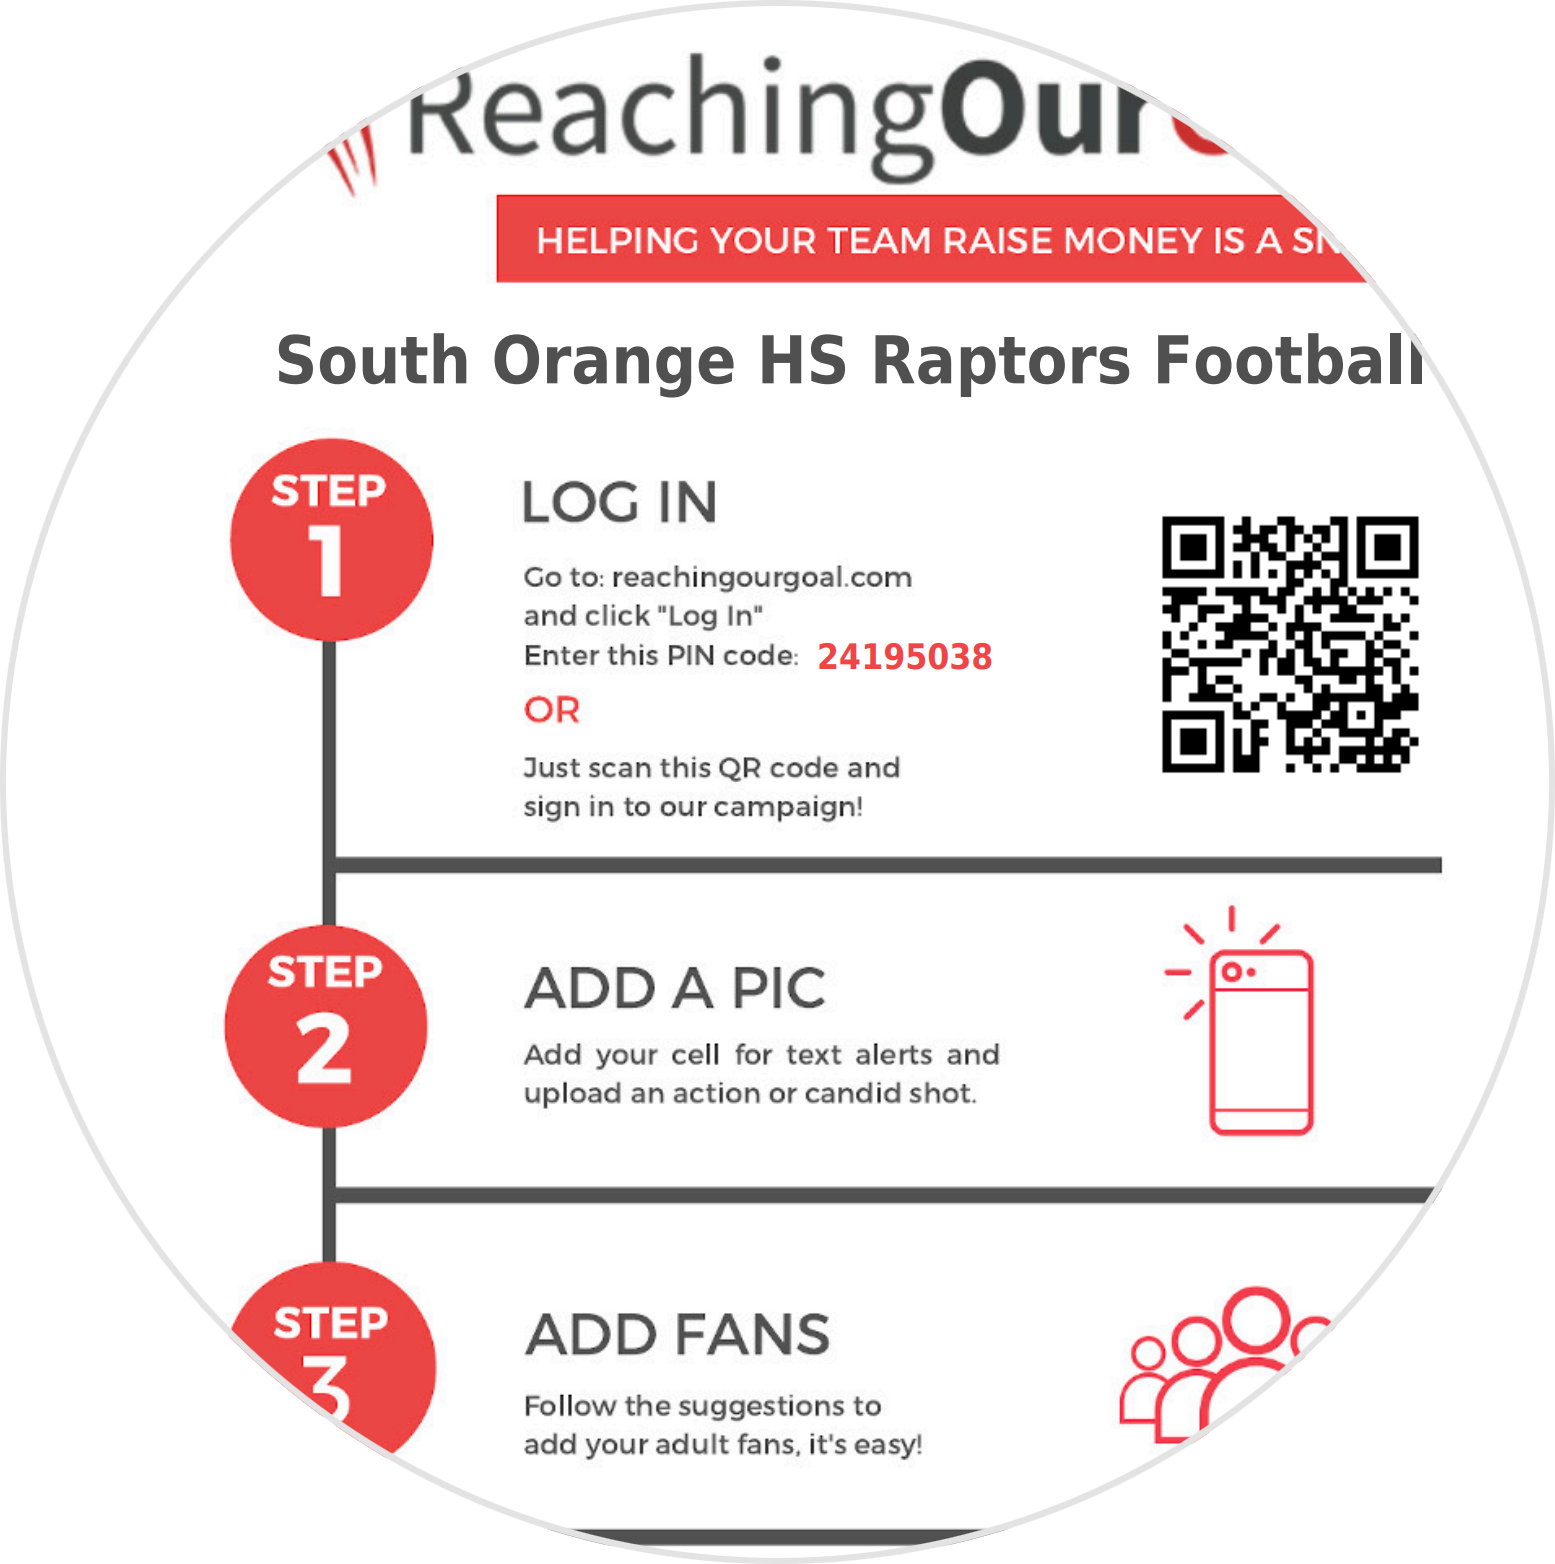 Reaching Our Goal - Engaging the Team